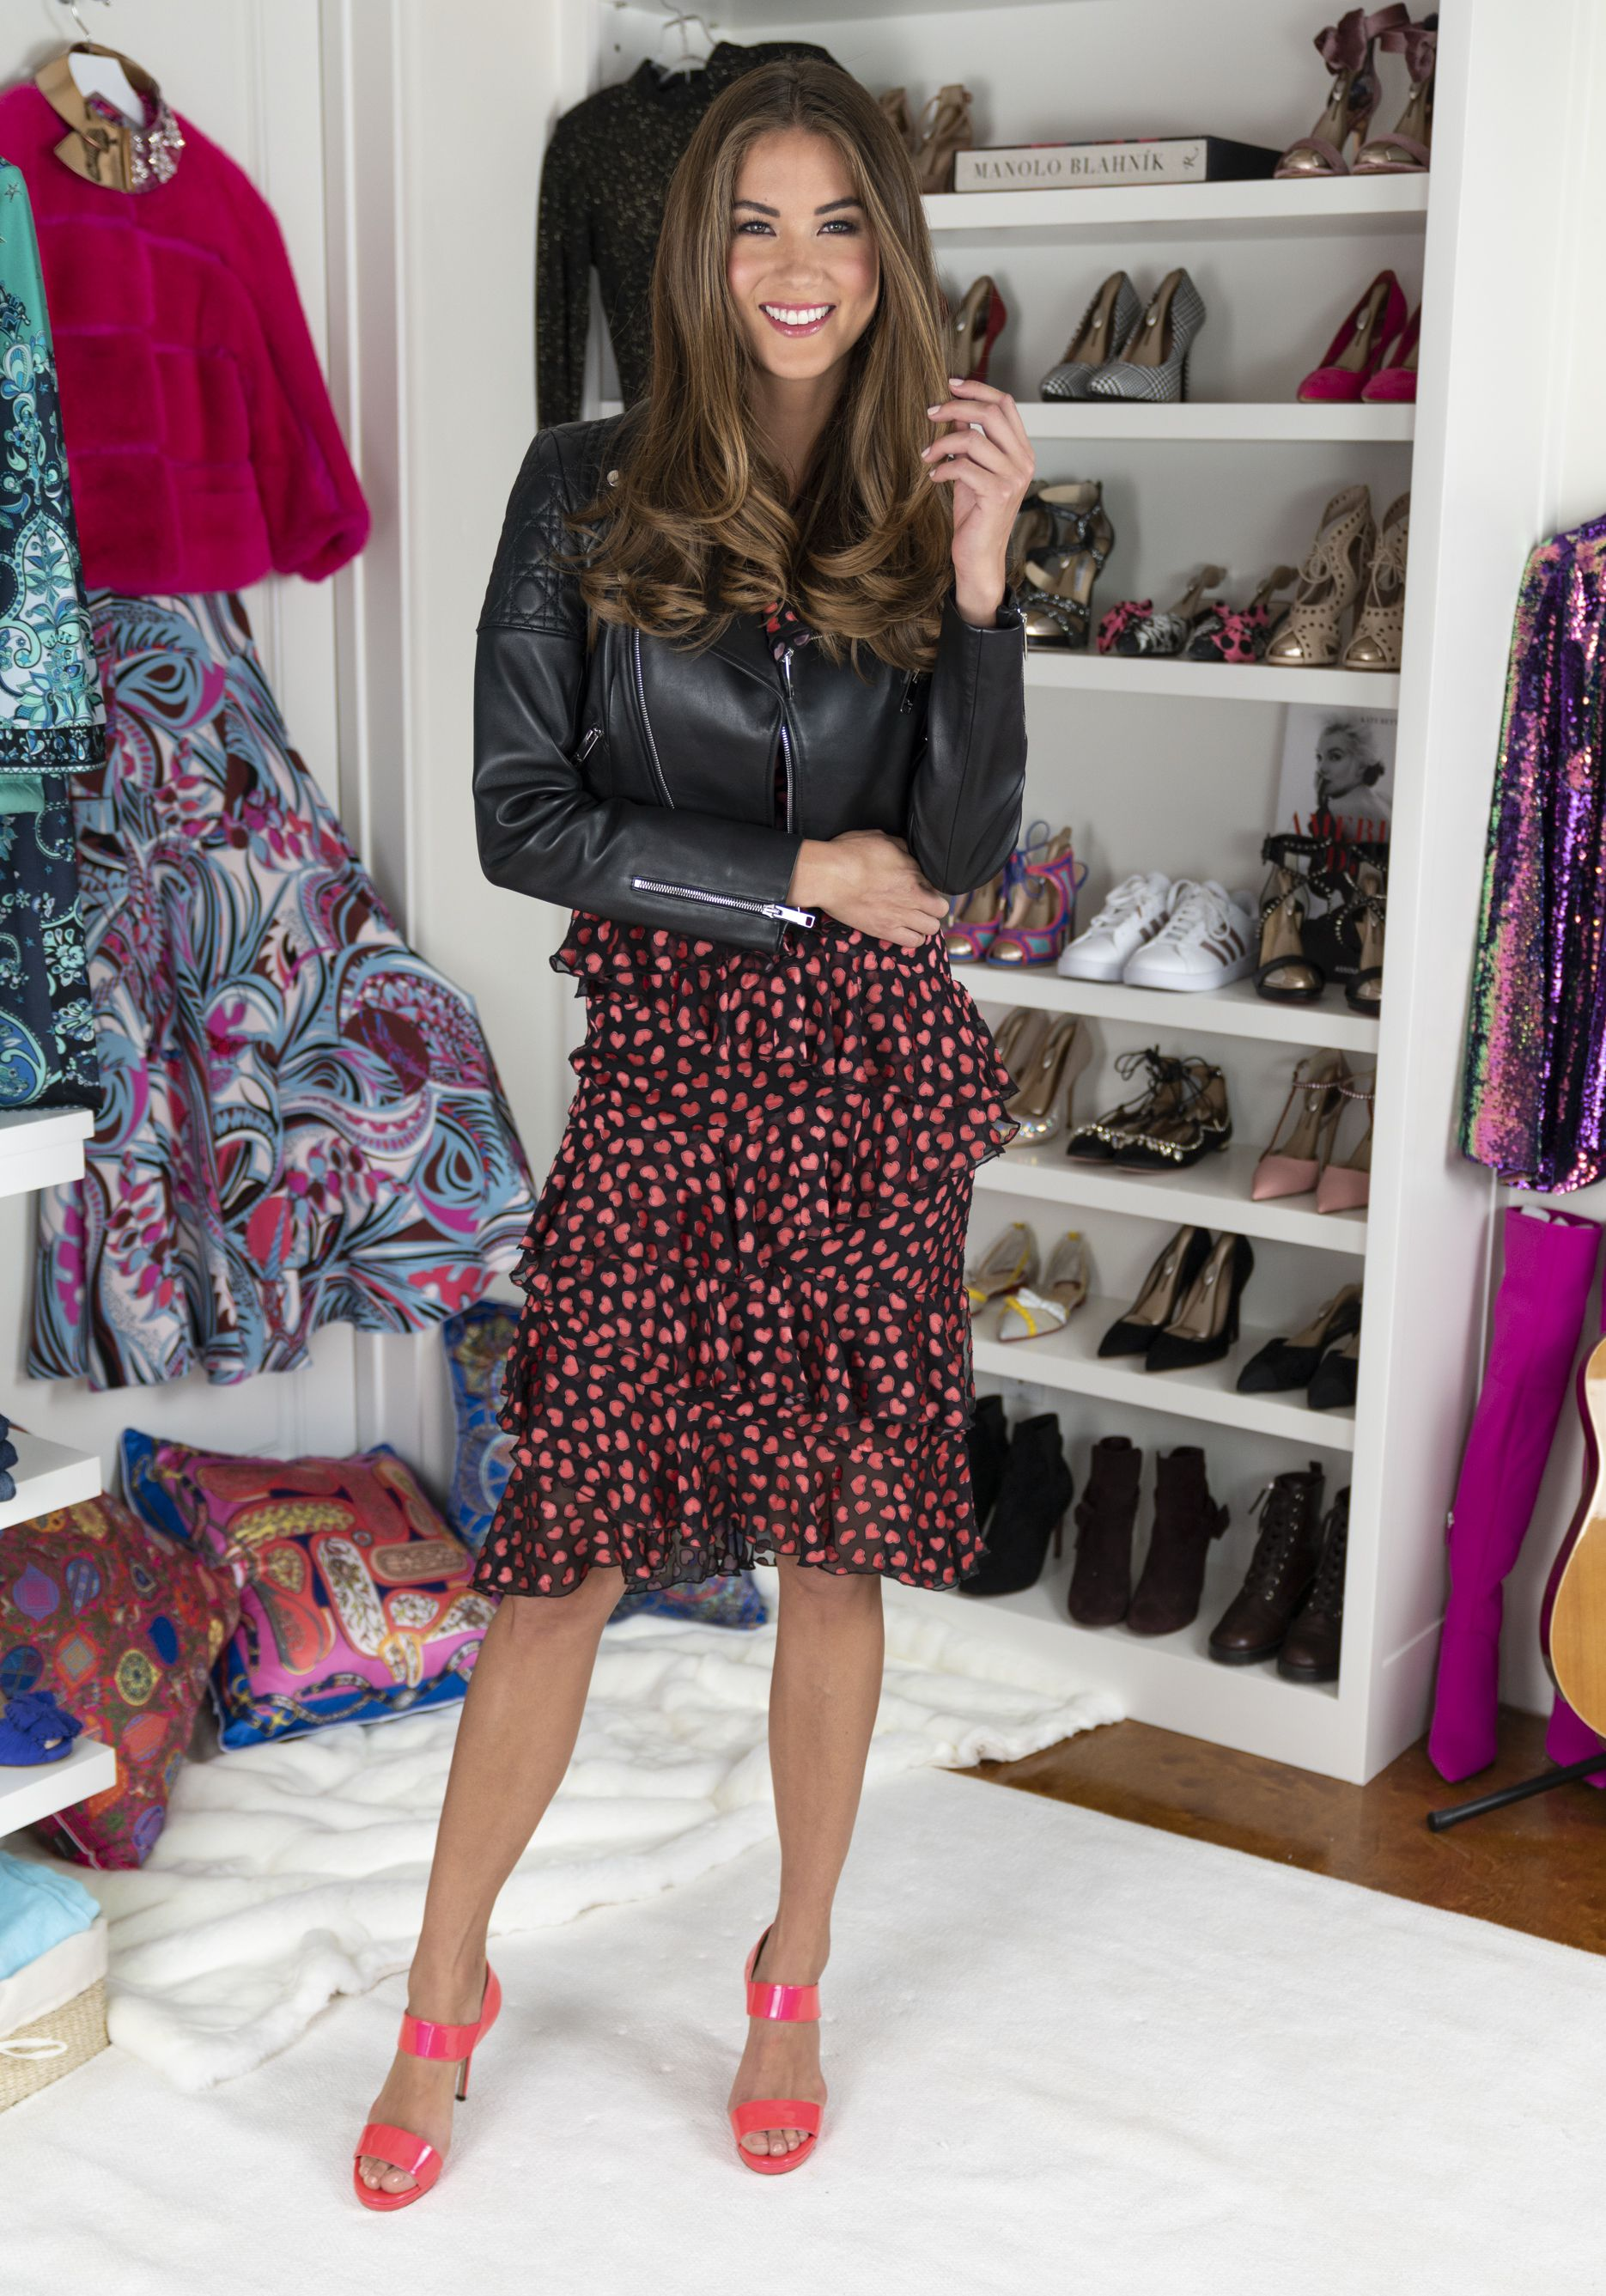 42a4085fd578 How to style heels with the cutest polka dot dress and chic leather jacket!